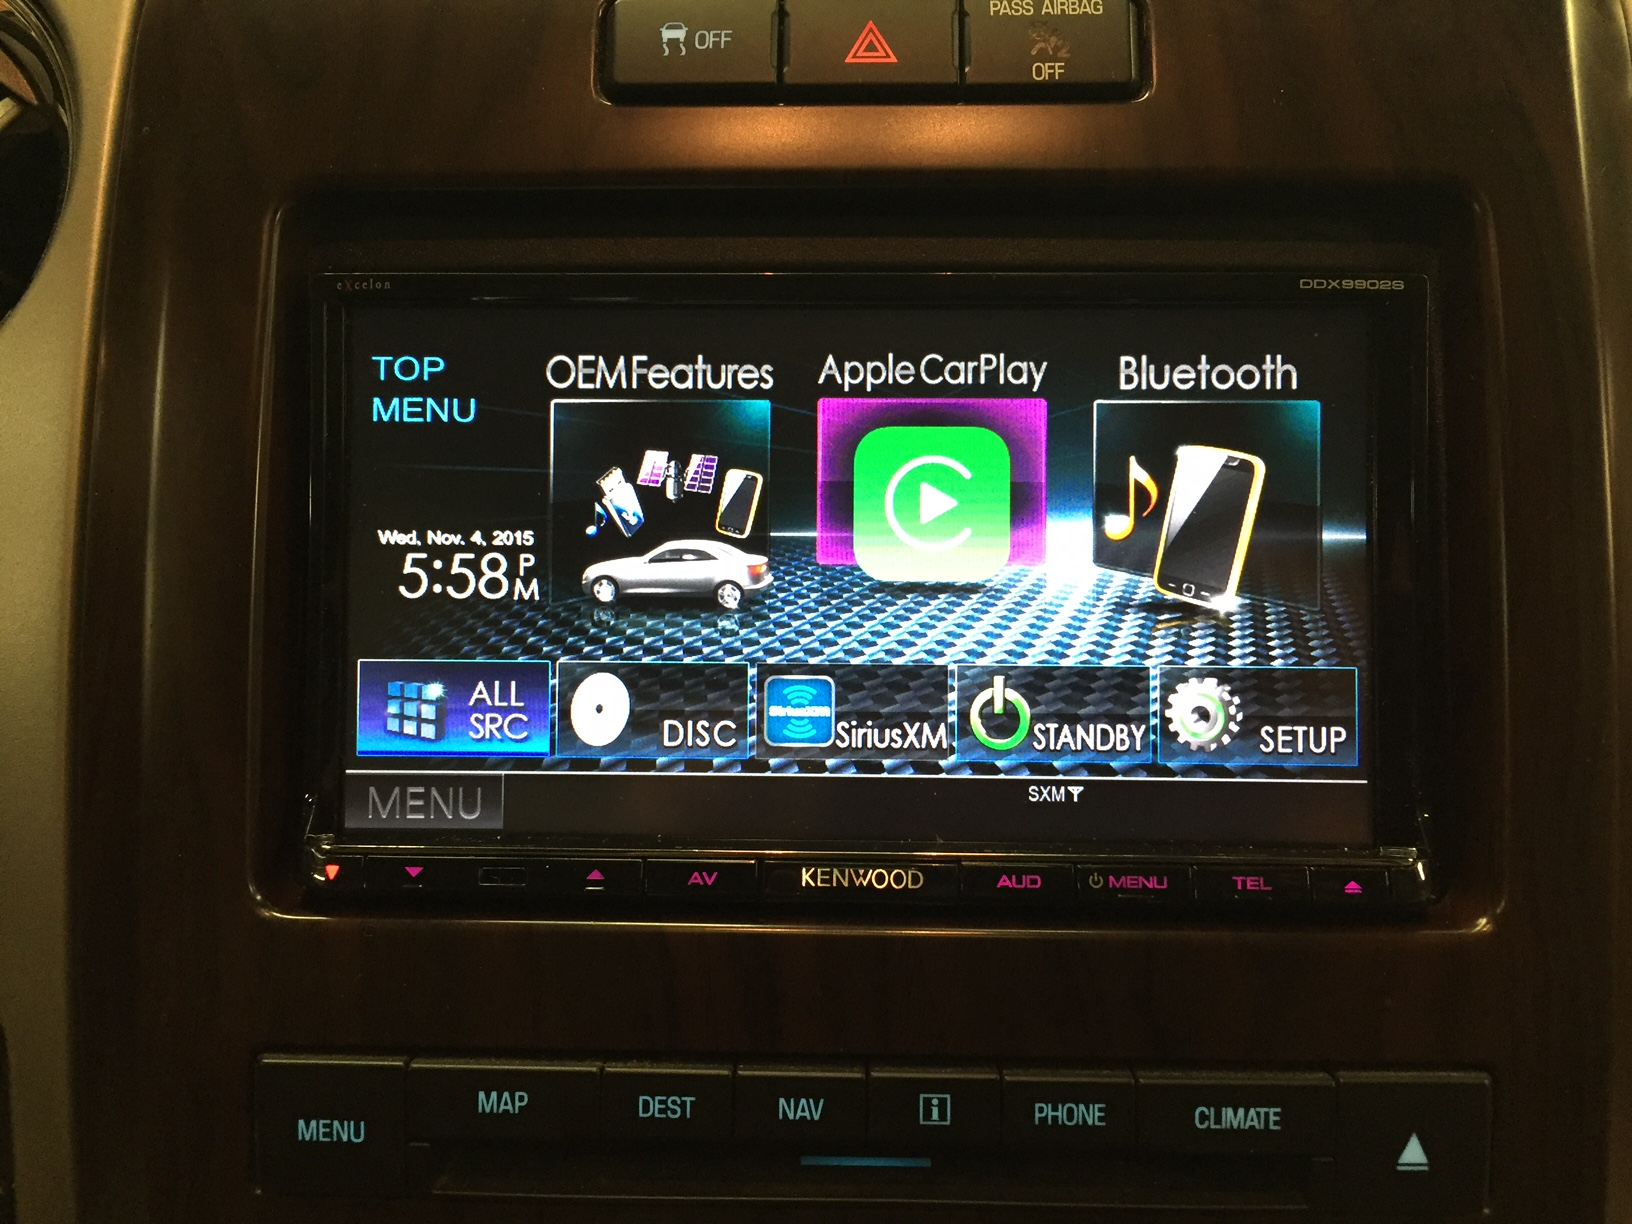 wiring diagram for car stereo f150 nissan altima replacing a defective factory navigation radio in 2012 f 150 with kenwood ddx9902s installed that came equipped stock